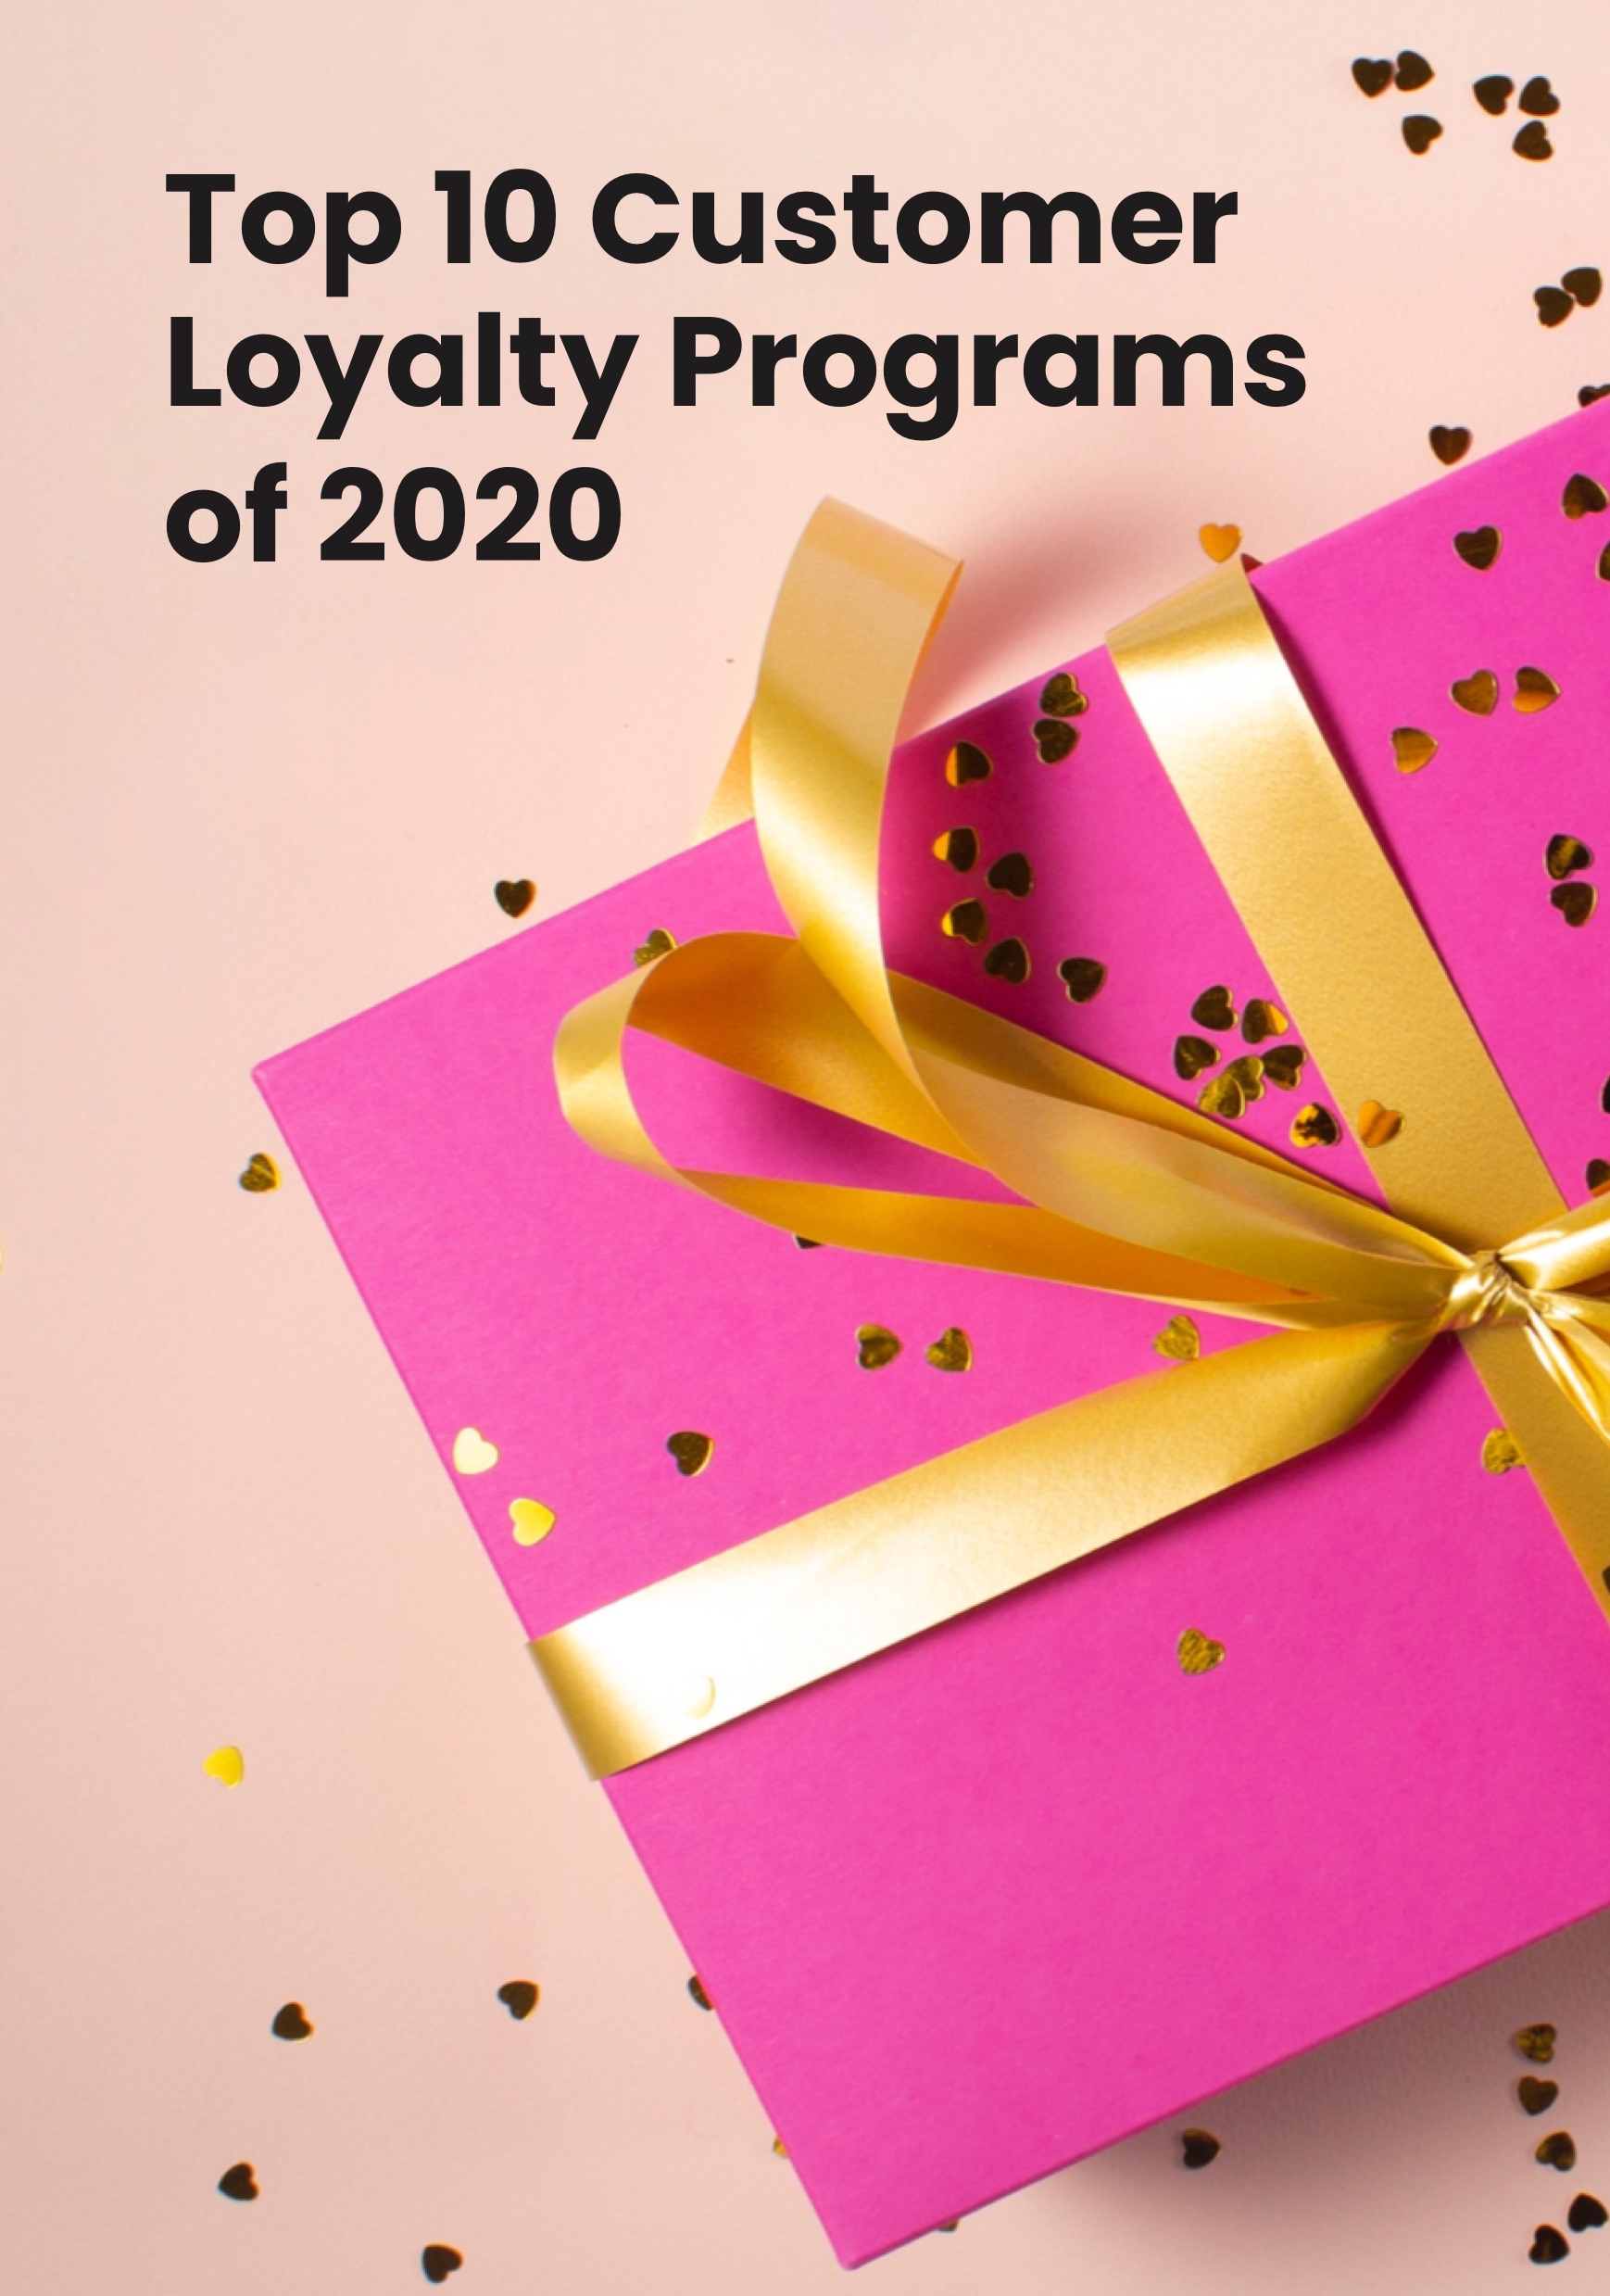 Top 10 Customer Loyalty Programs of 2020